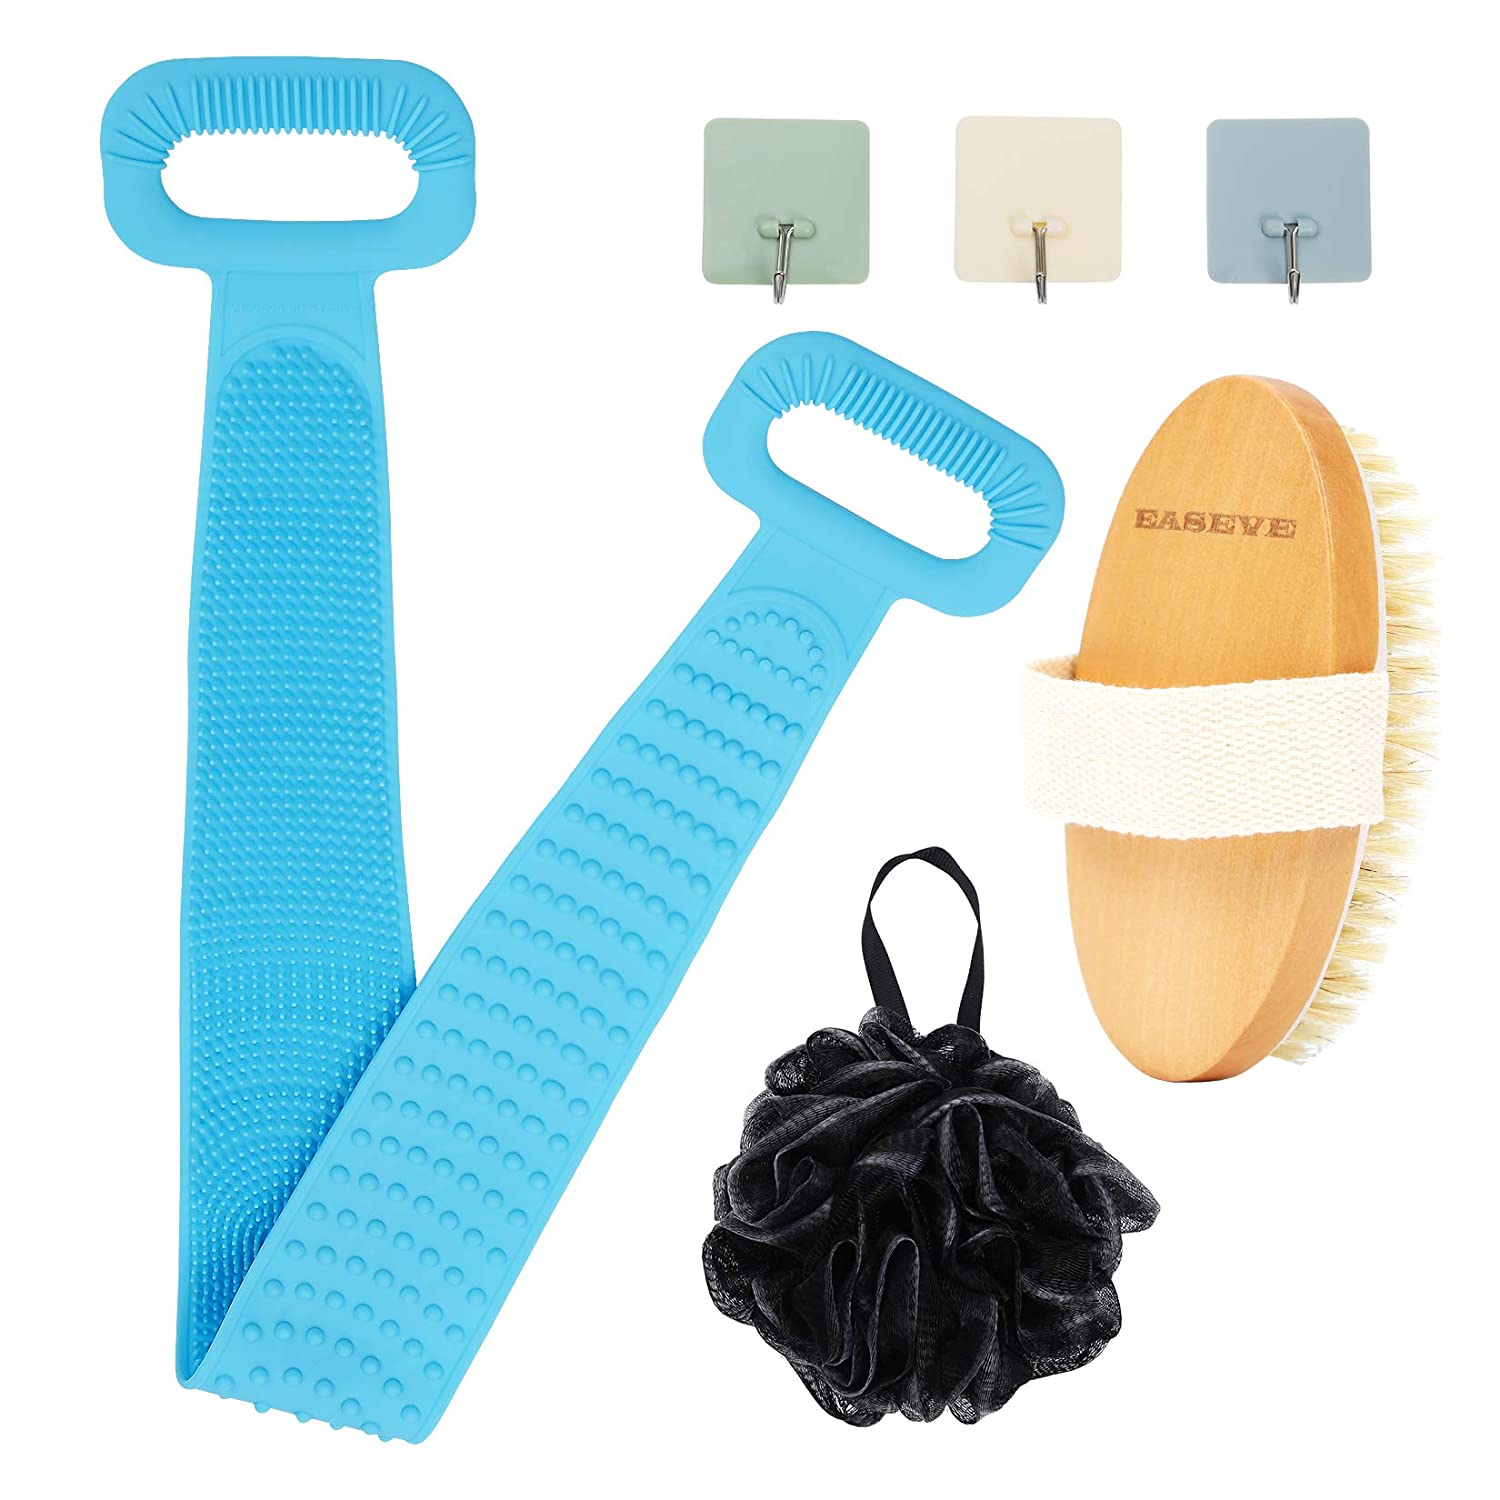 Silicone Back Scrubber for Shower Brushing S Bath Dry Loofah Ranking TOP10 Max 89% OFF